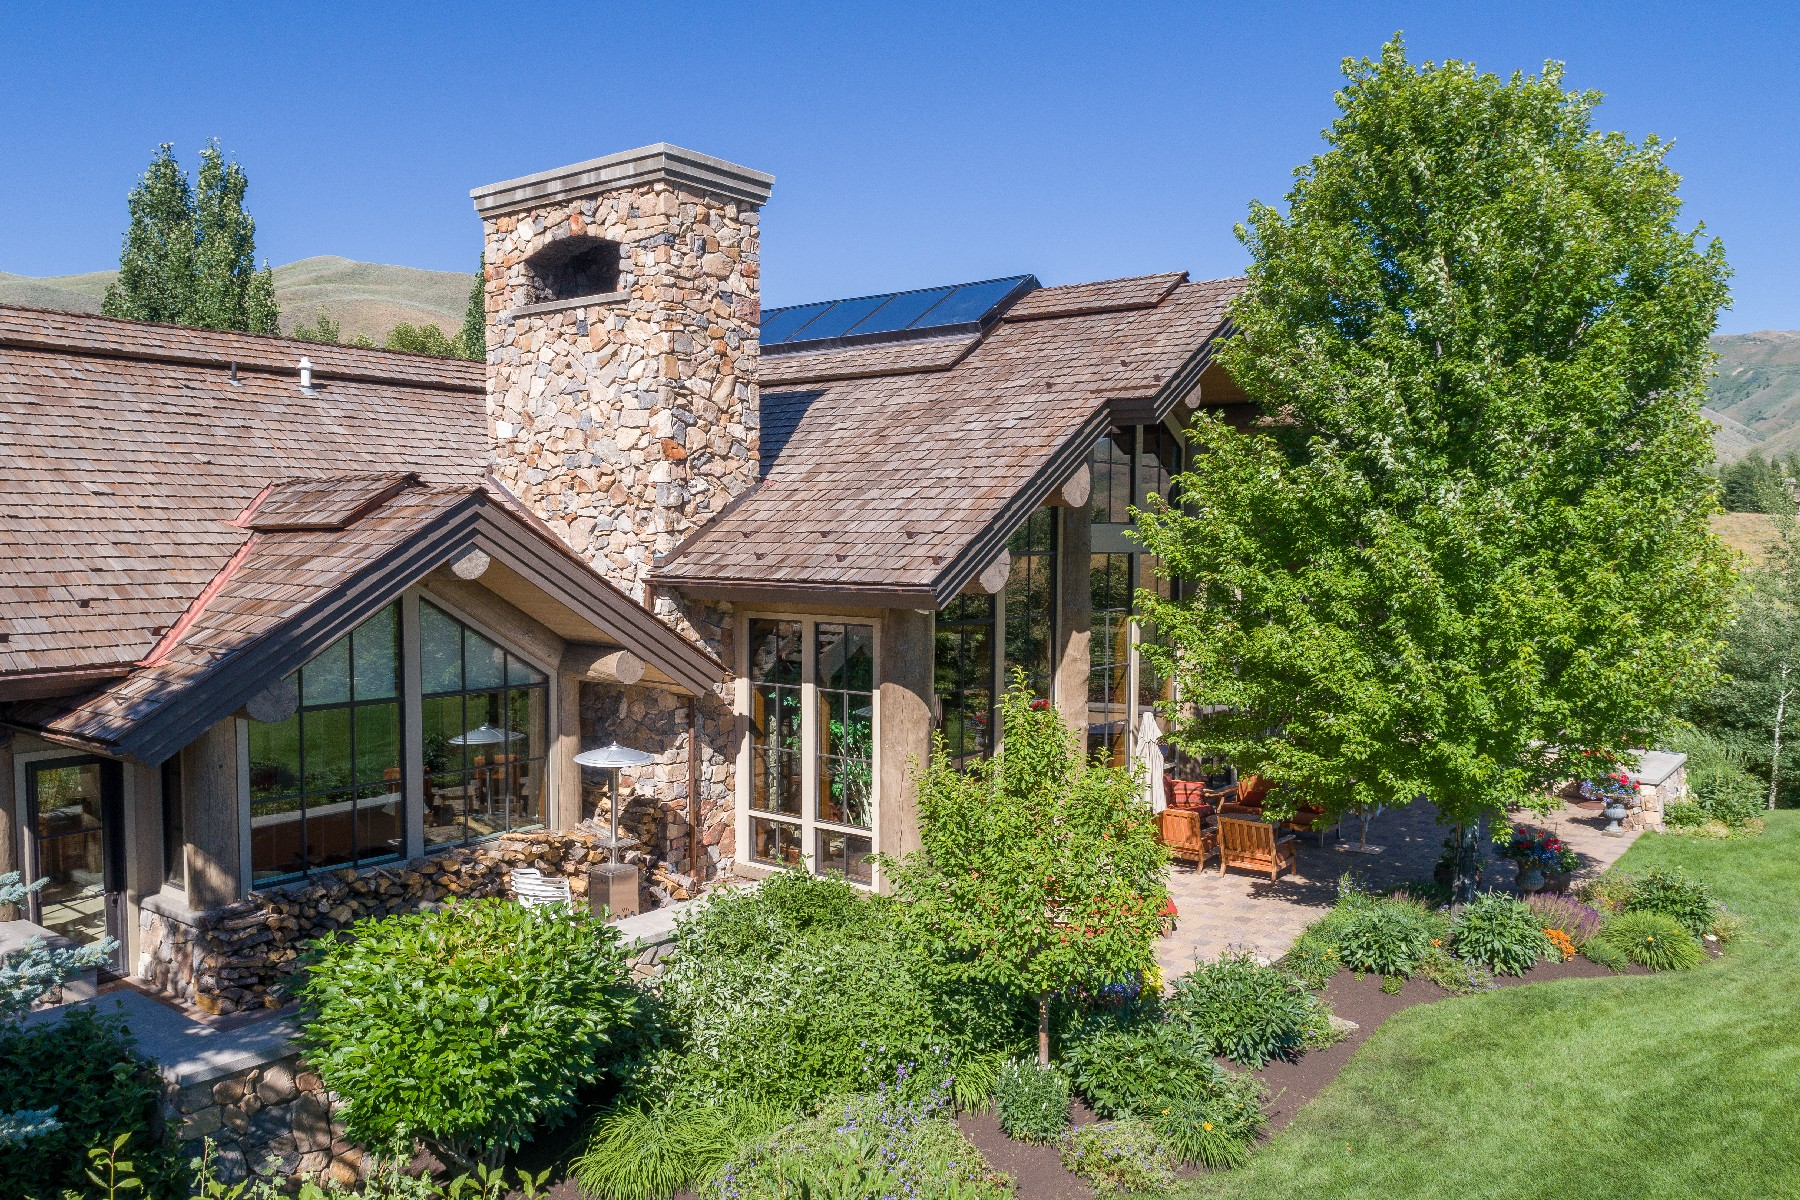 Additional photo for property listing at Luxury Sun Valley Estate 111 Sagewillow Rd Sun Valley, Idaho 83353 United States